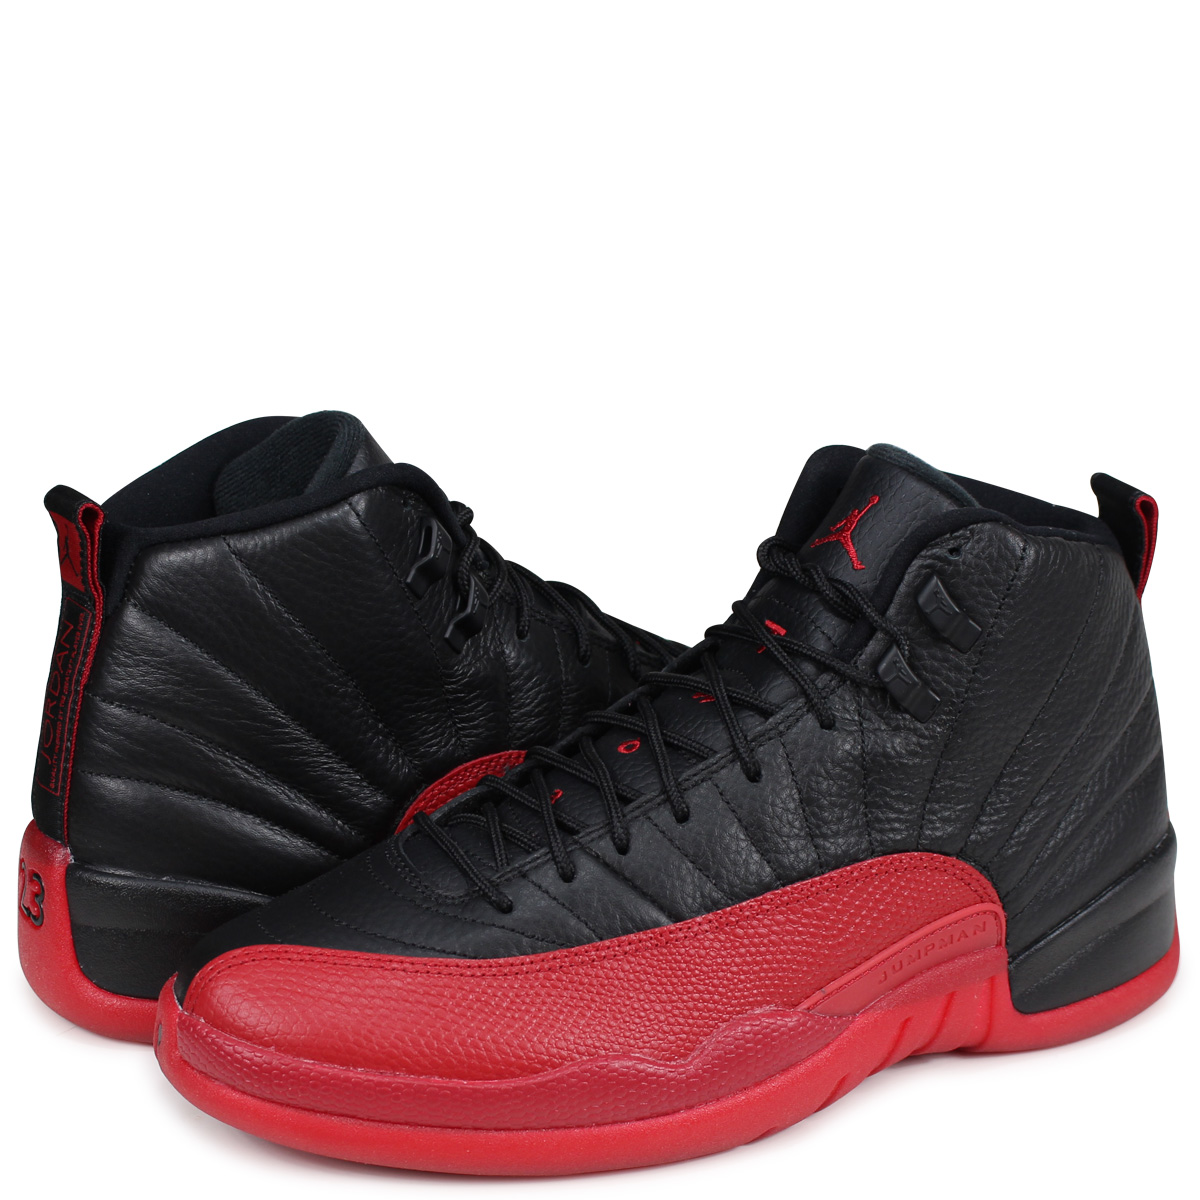 a159fb5d80204 NIKE AIR JORDAN 12 RETRO FLU GAME Nike Air Jordan 12 nostalgic sneakers  men s full game 130